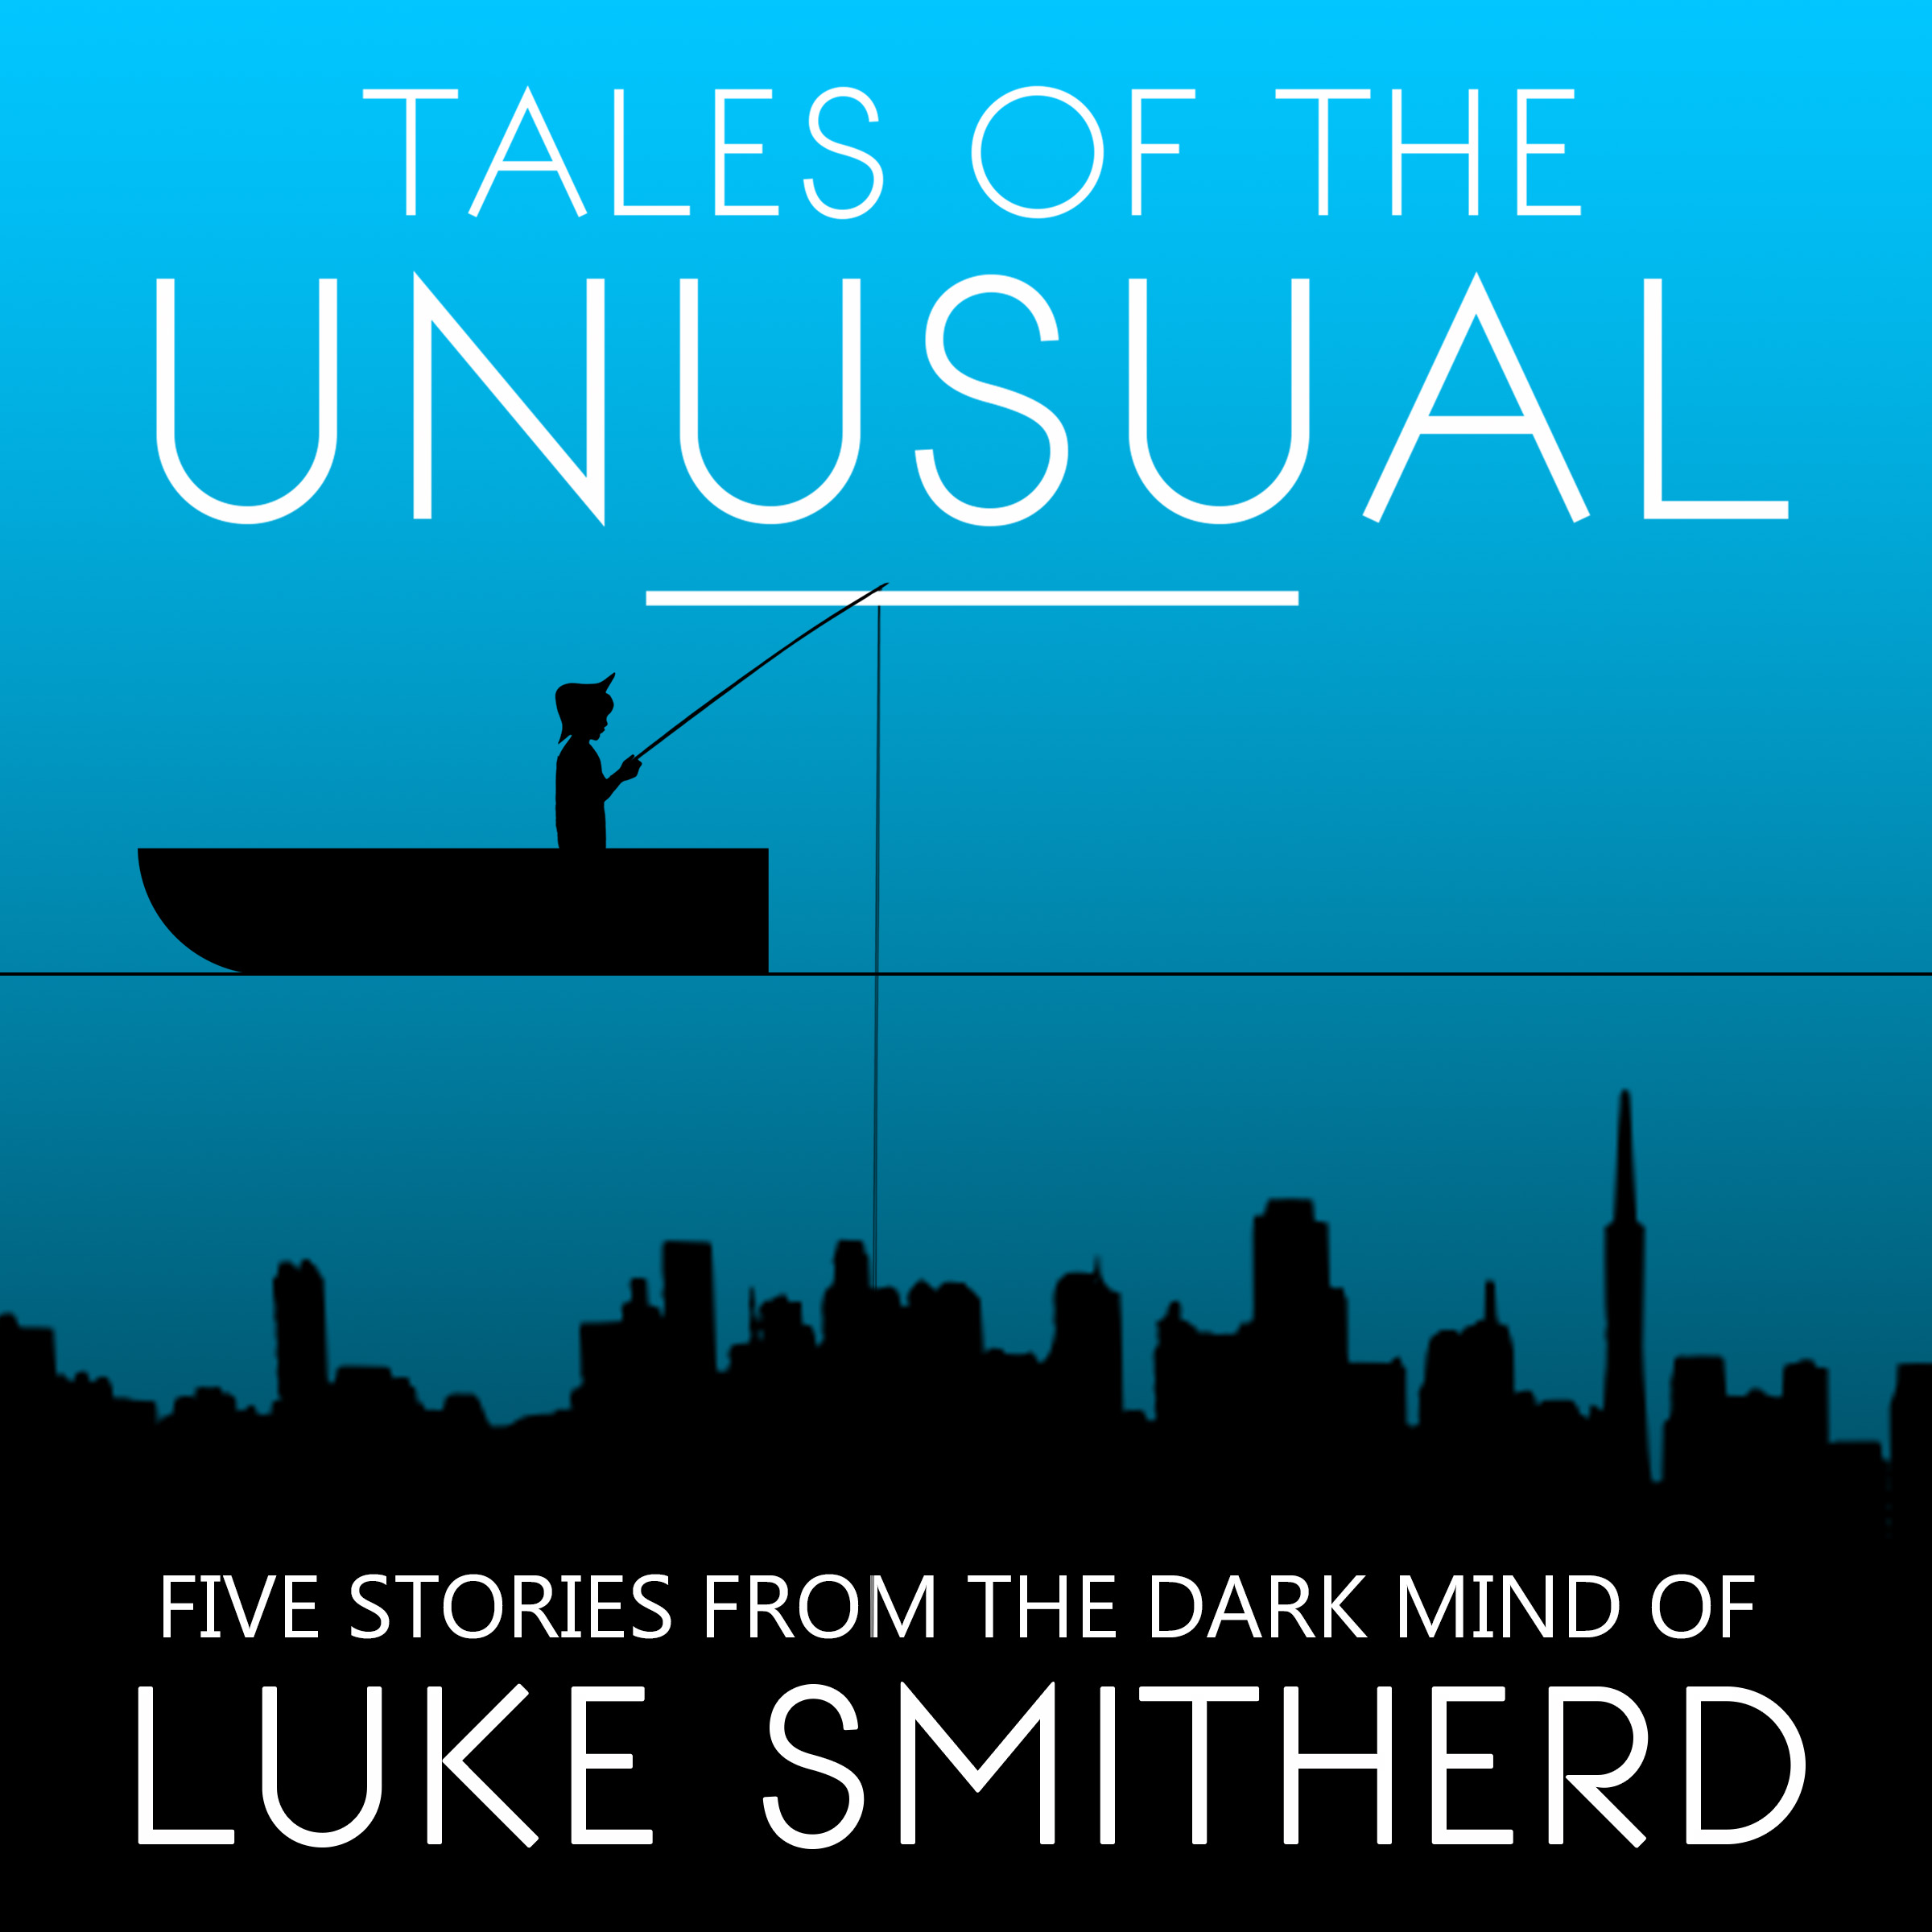 Tales of the unusual